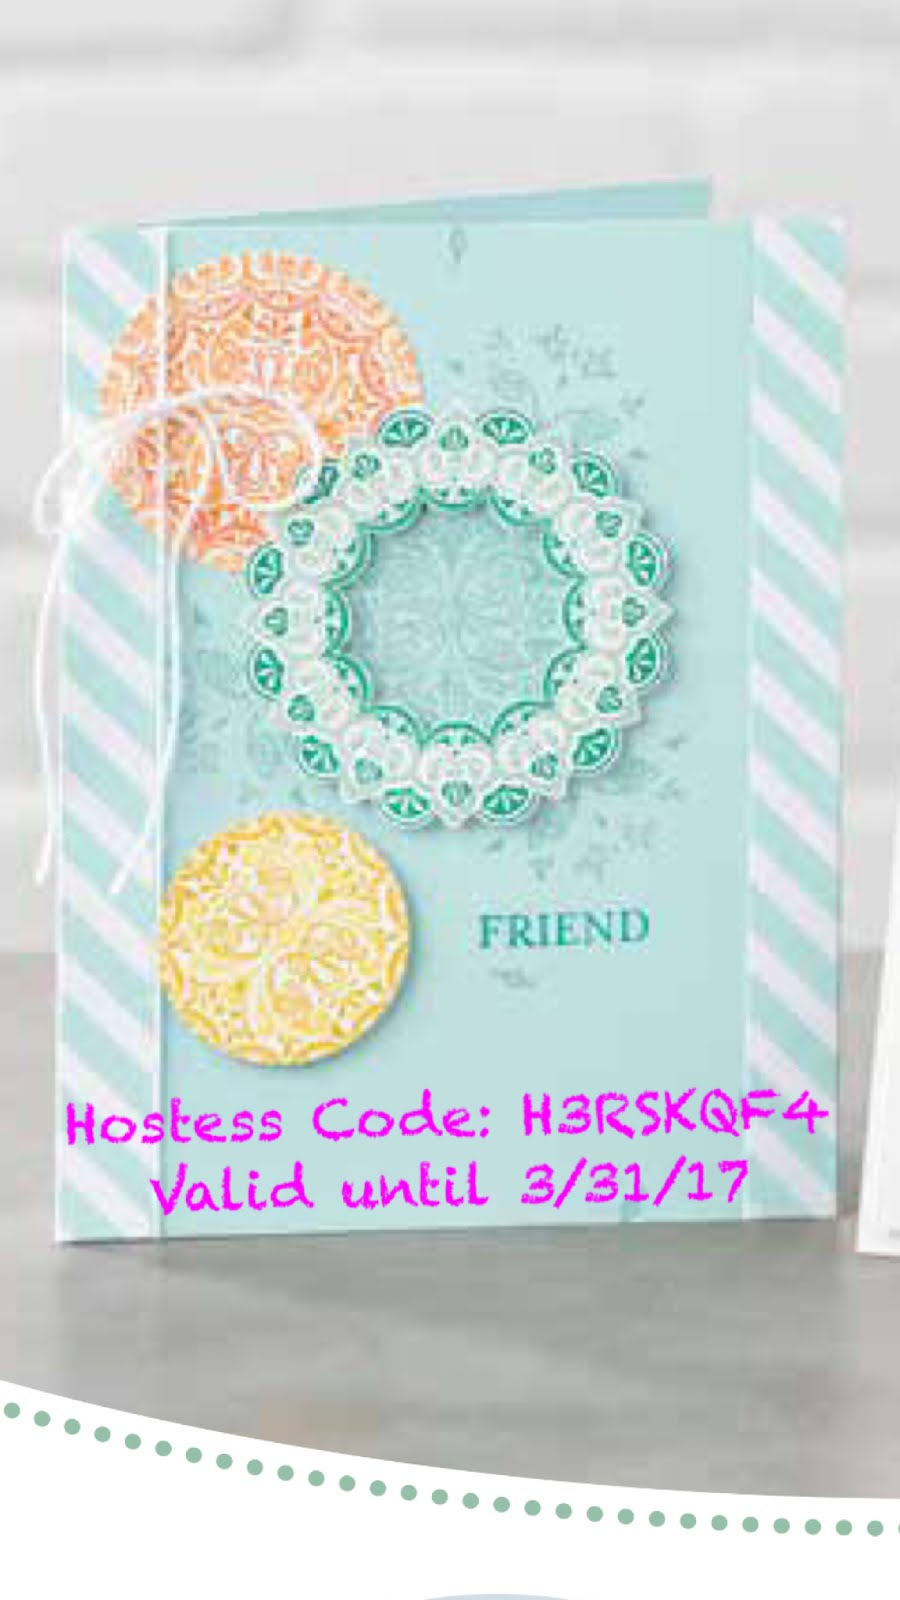 FINAL SAB17 Hostess Code